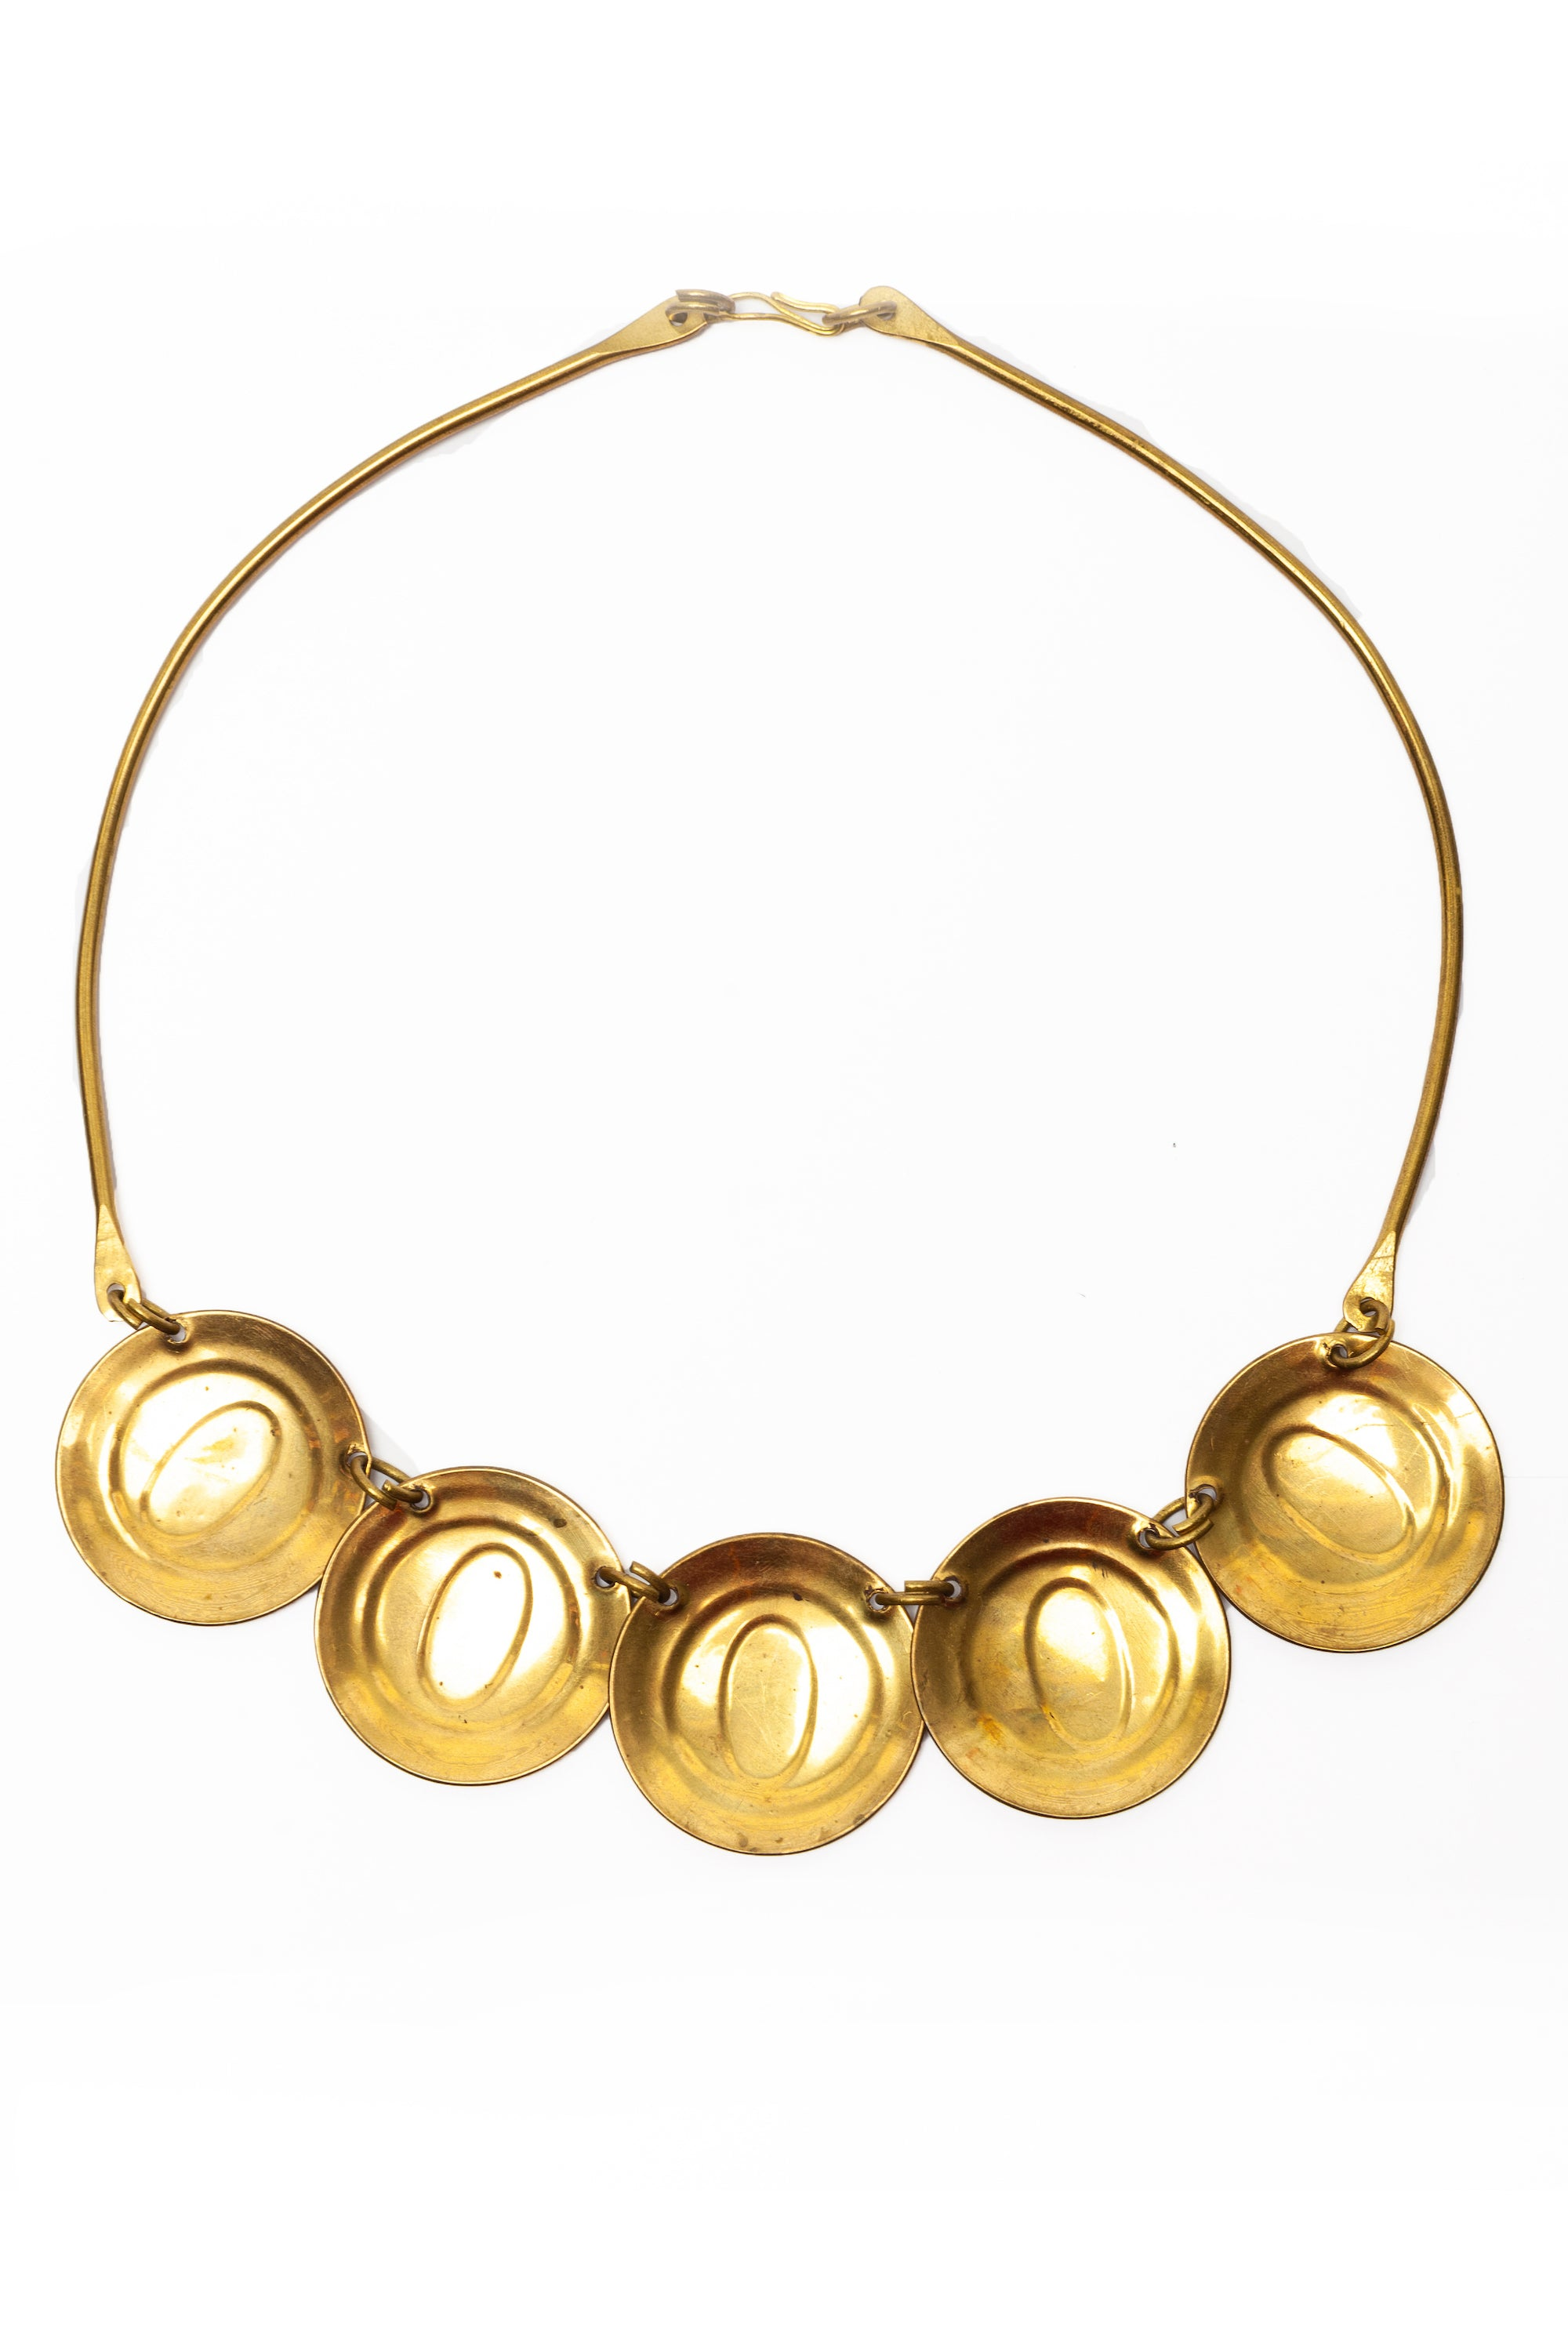 Vintage <br> 1960's/70's mexican brass metal choker necklace